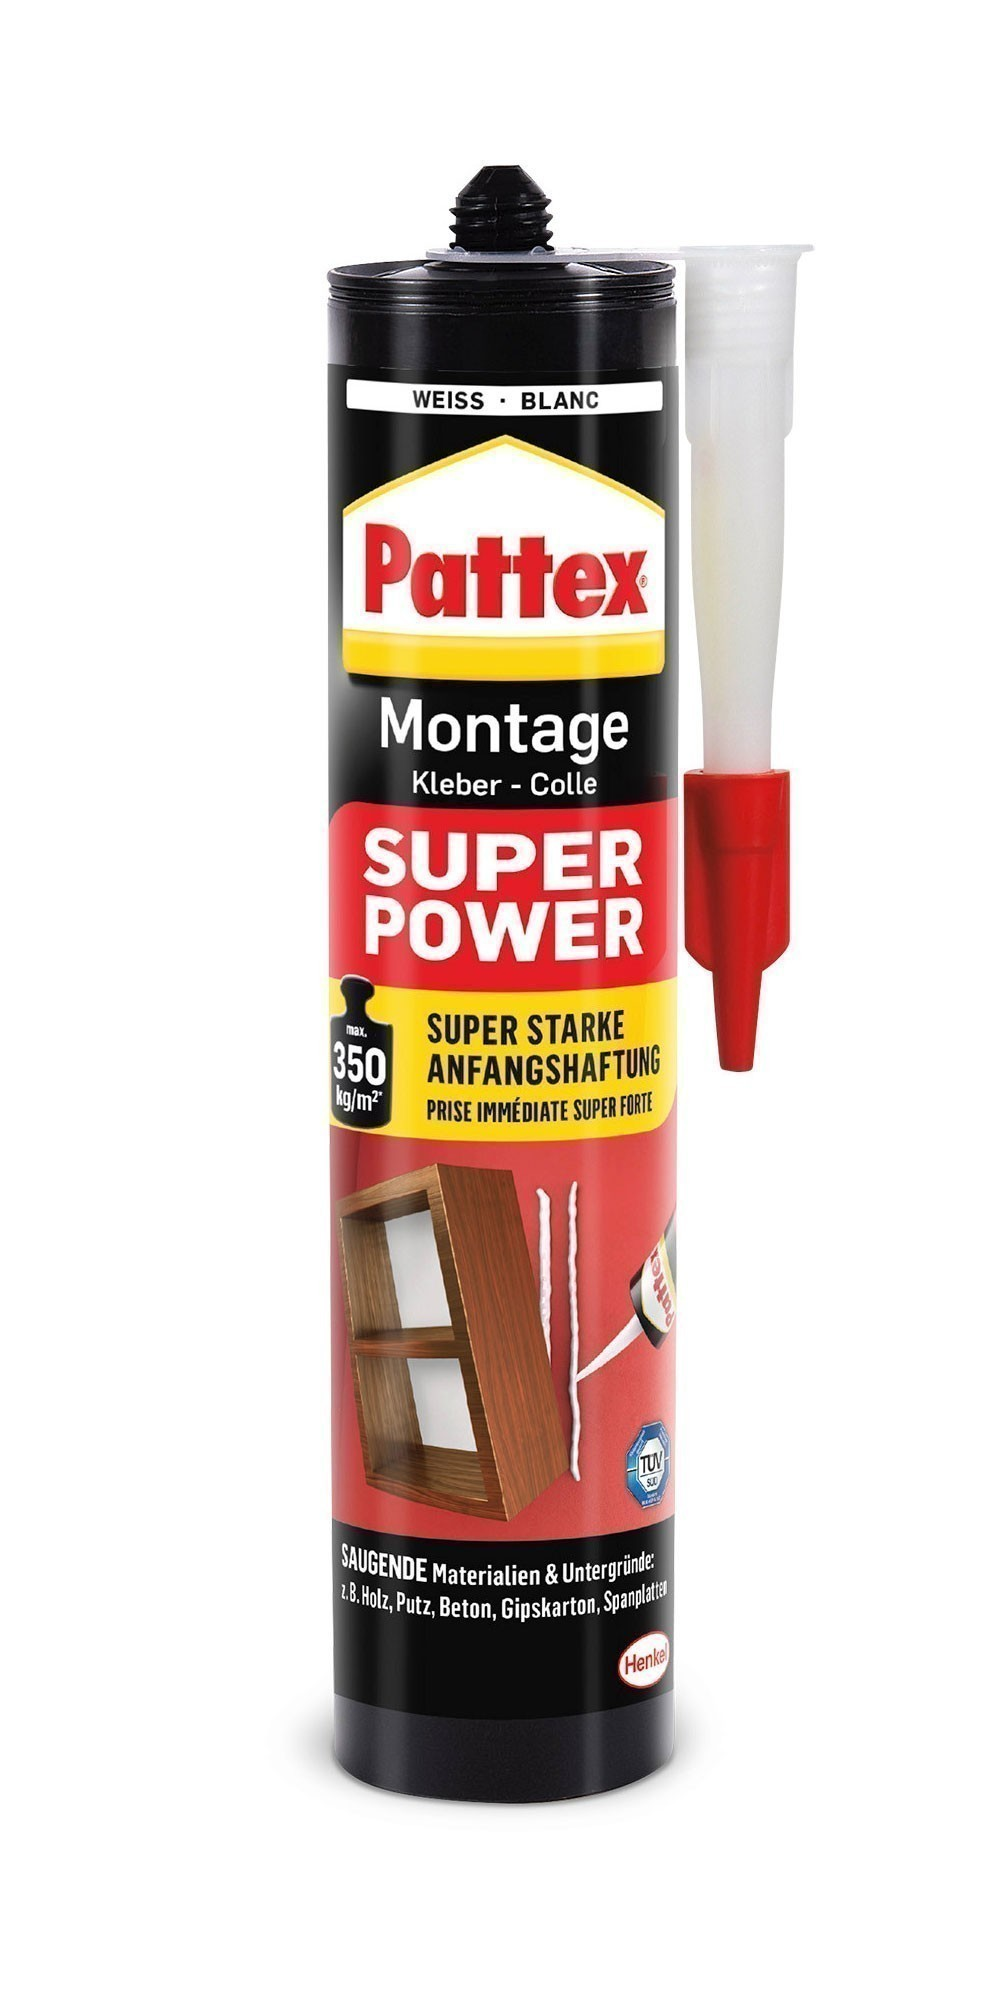 Pattex Montagekleber Super Power 370g Bild 1